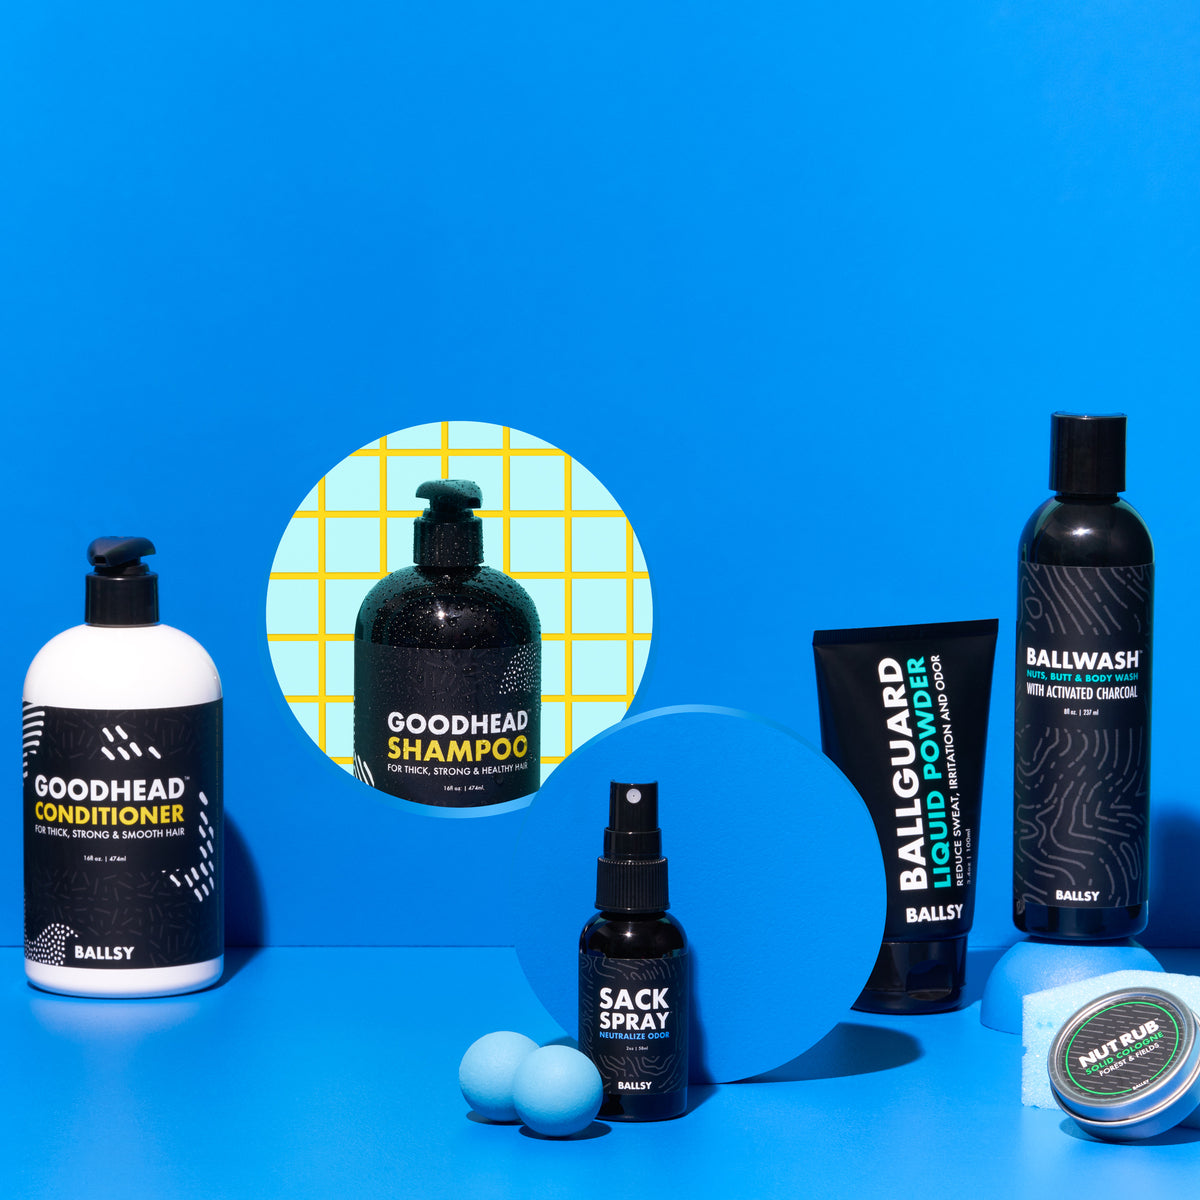 An array of personal care items from Ballsy displayed against a blue background.